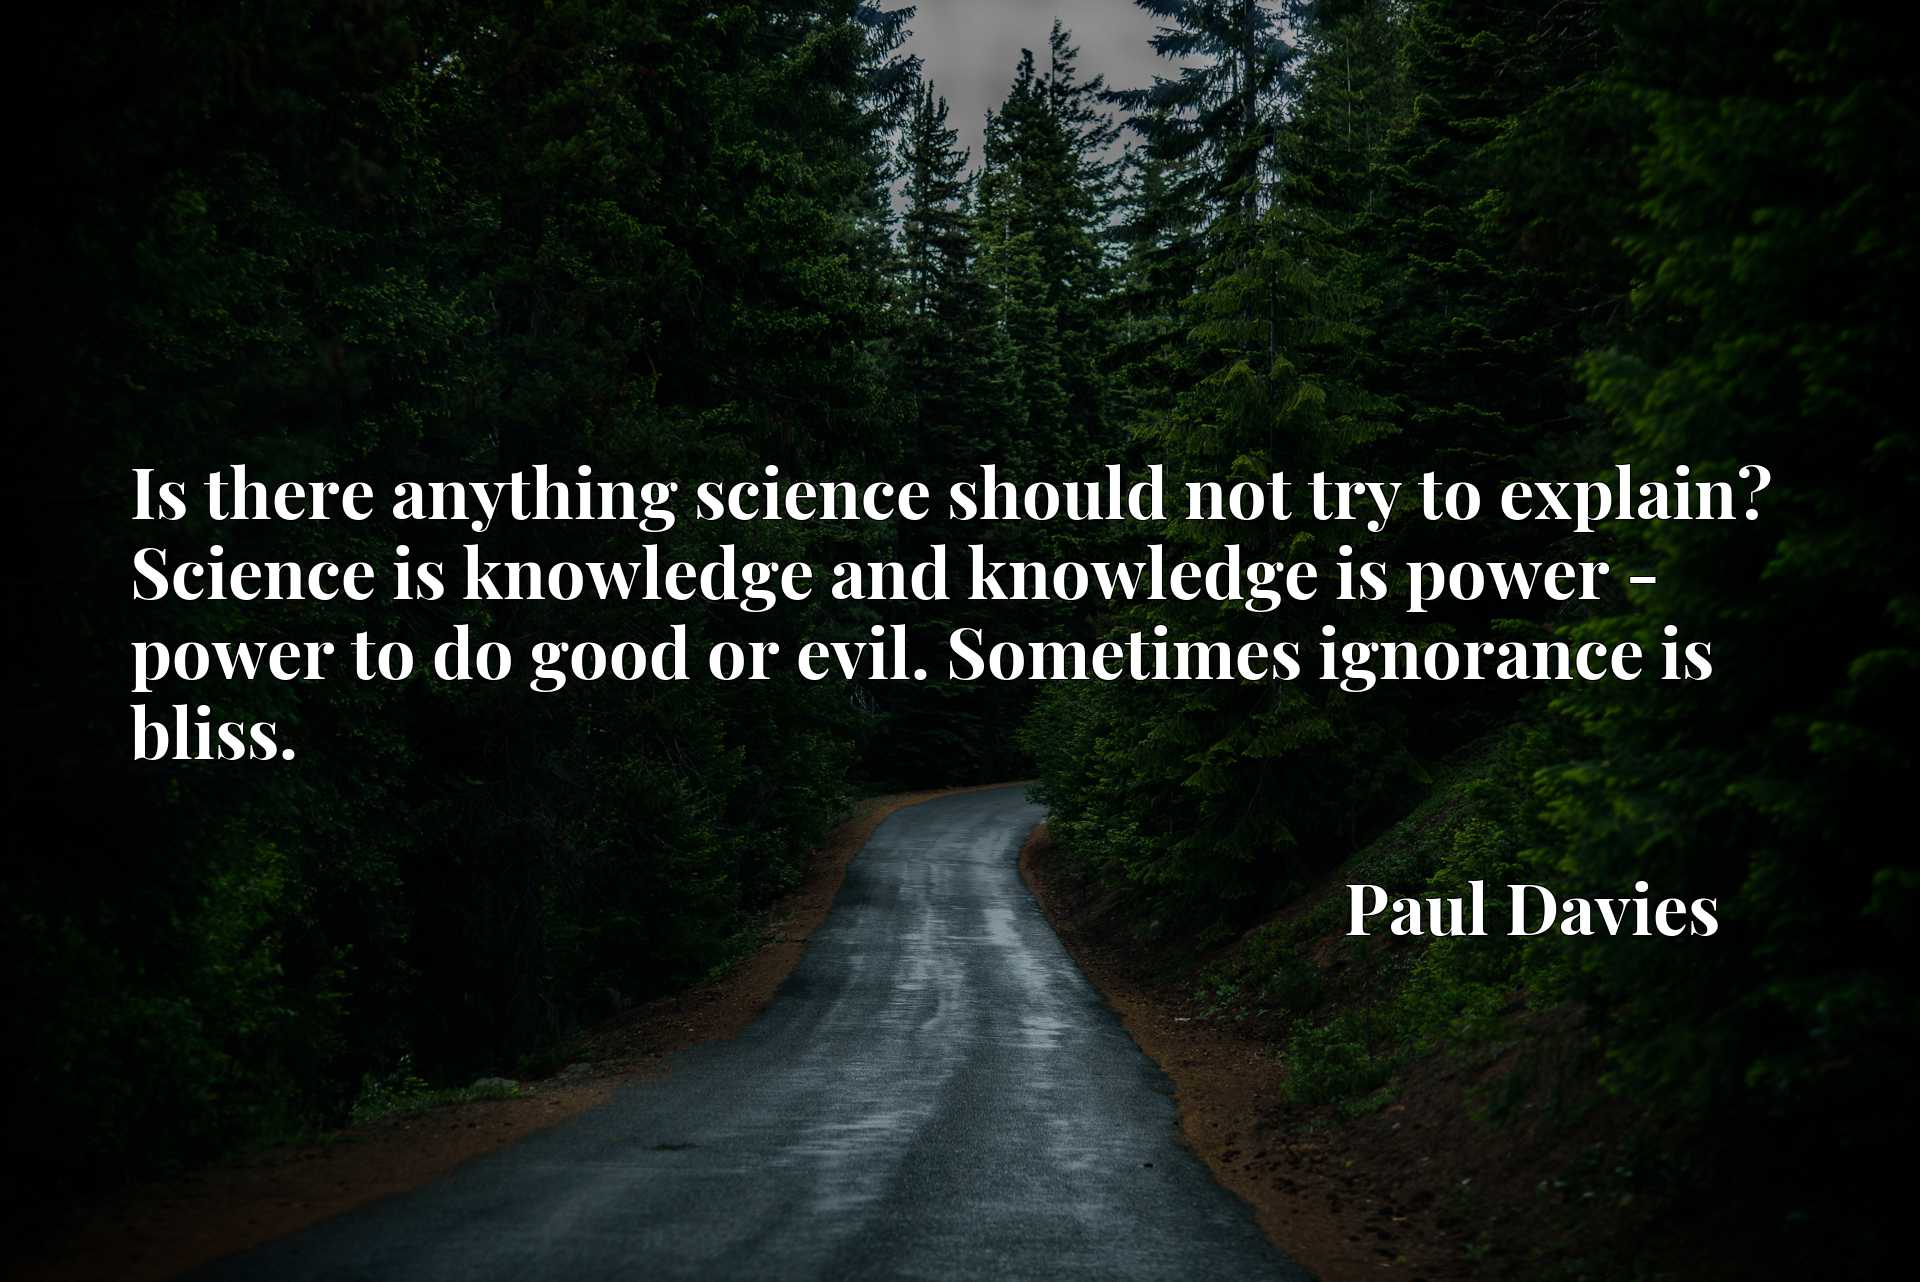 Quote Picture :Is there anything science should not try to explain? Science is knowledge and knowledge is power - power to do good or evil. Sometimes ignorance is bliss.